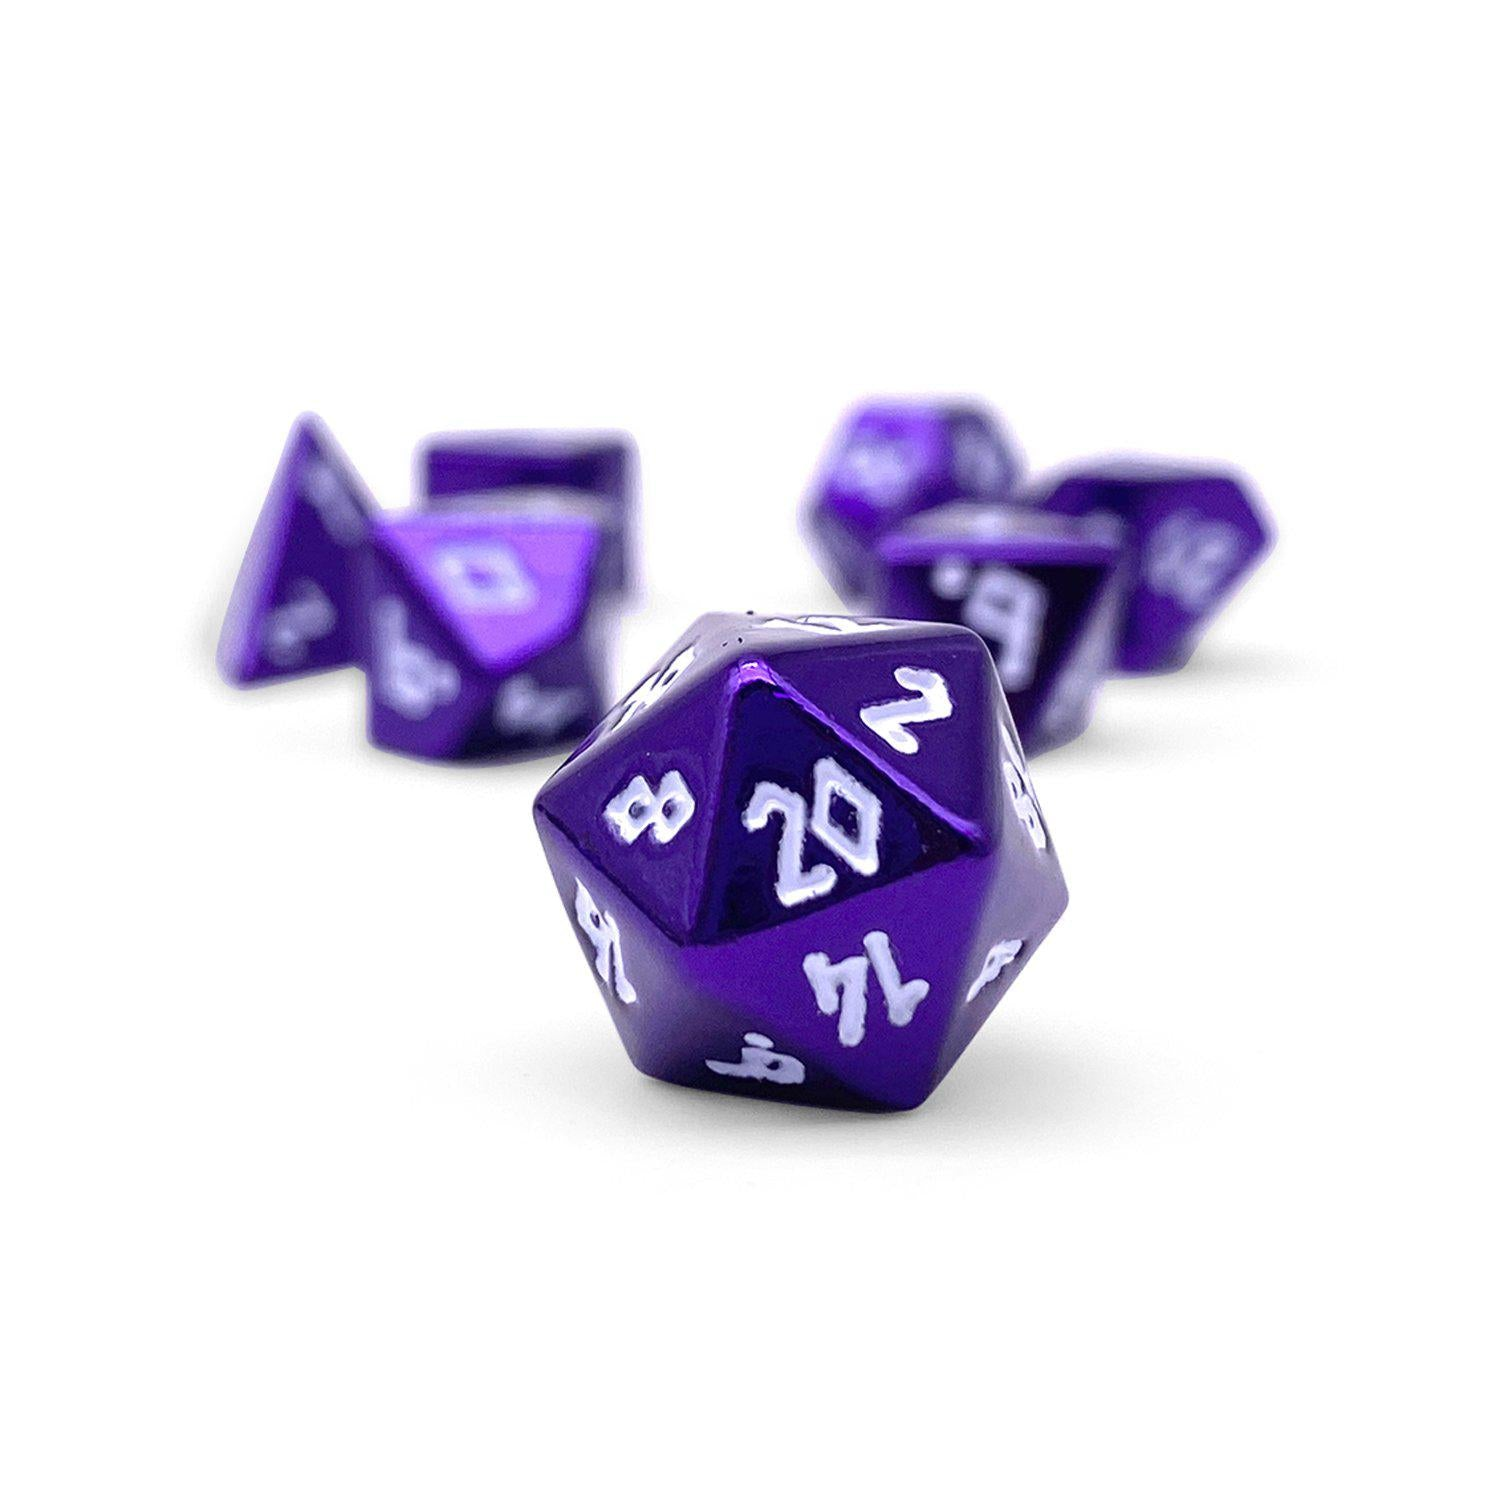 Bardic Purple Pebble ™ Dice - 10mm Alloy Mini Polyhedral Dice Set